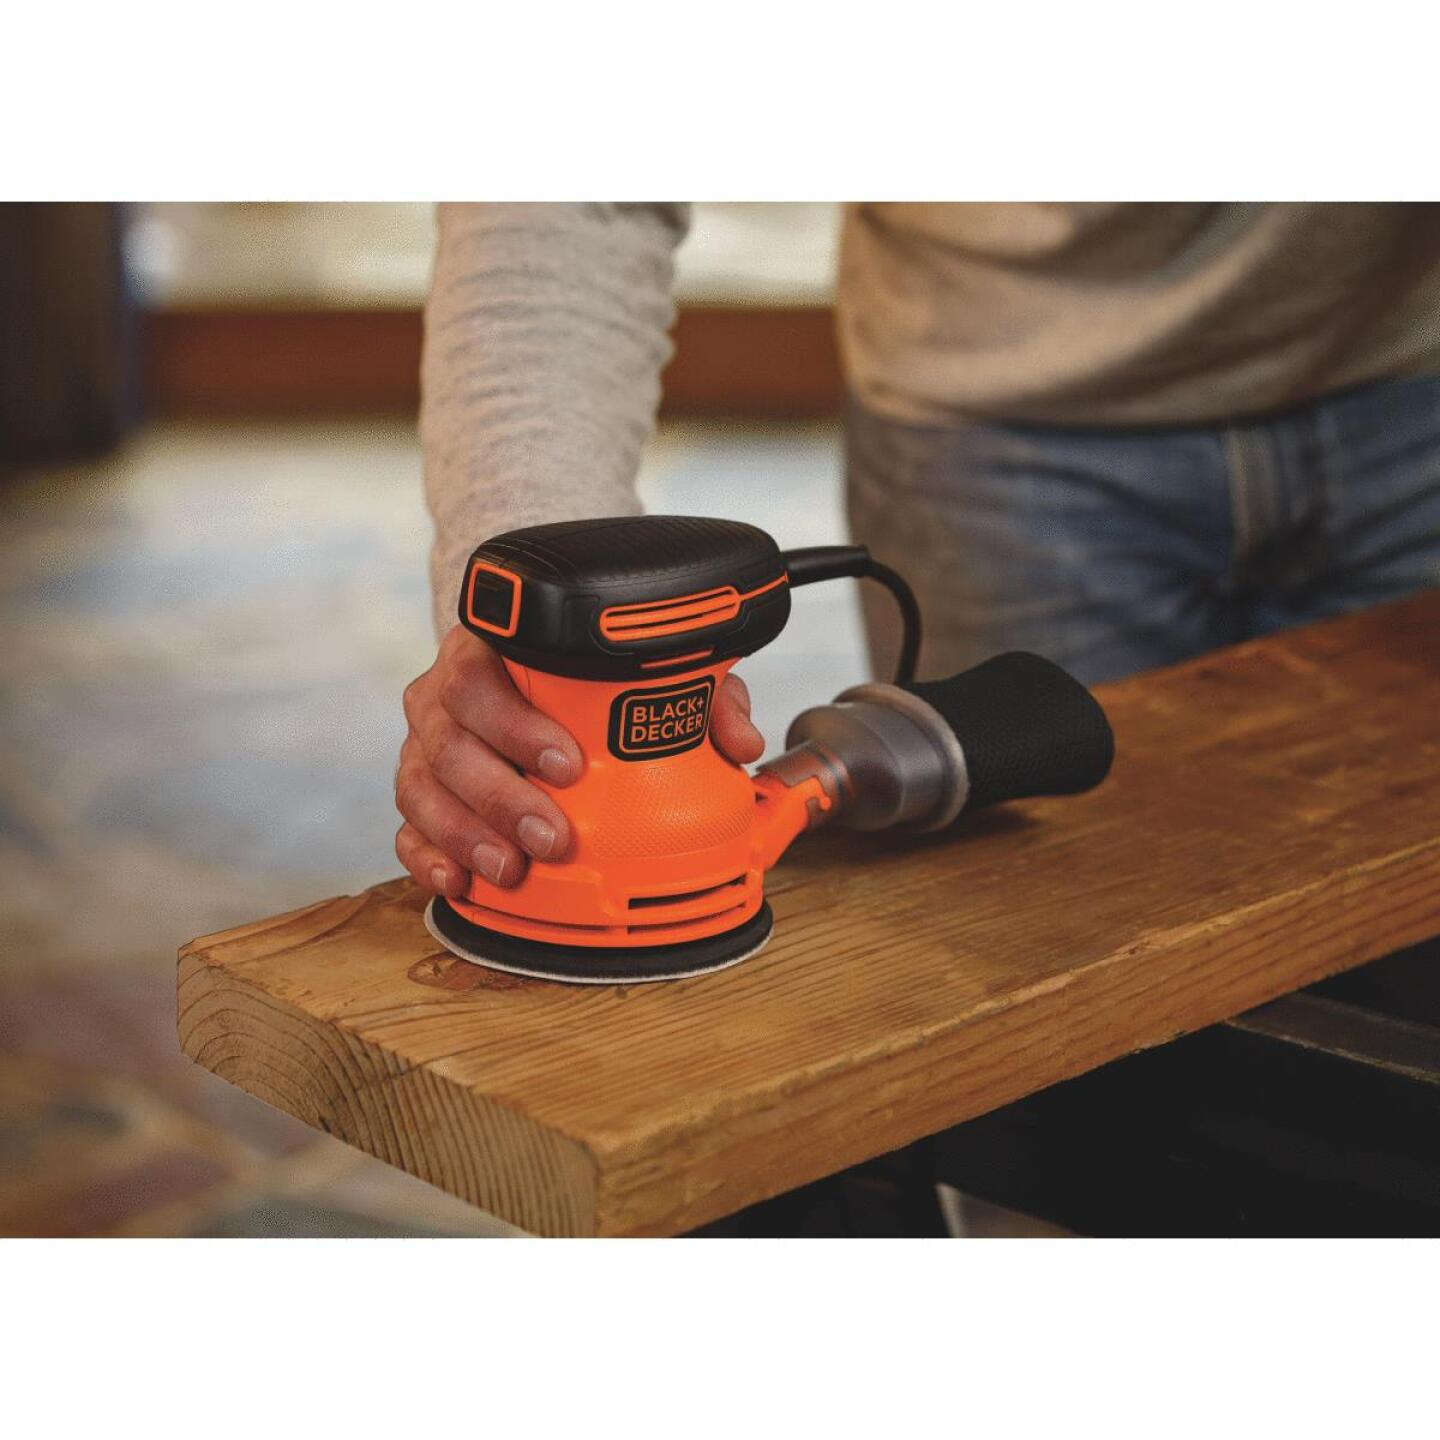 Black & Decker 5 In. 2.0A Random Orbit Finish Sander Image 6